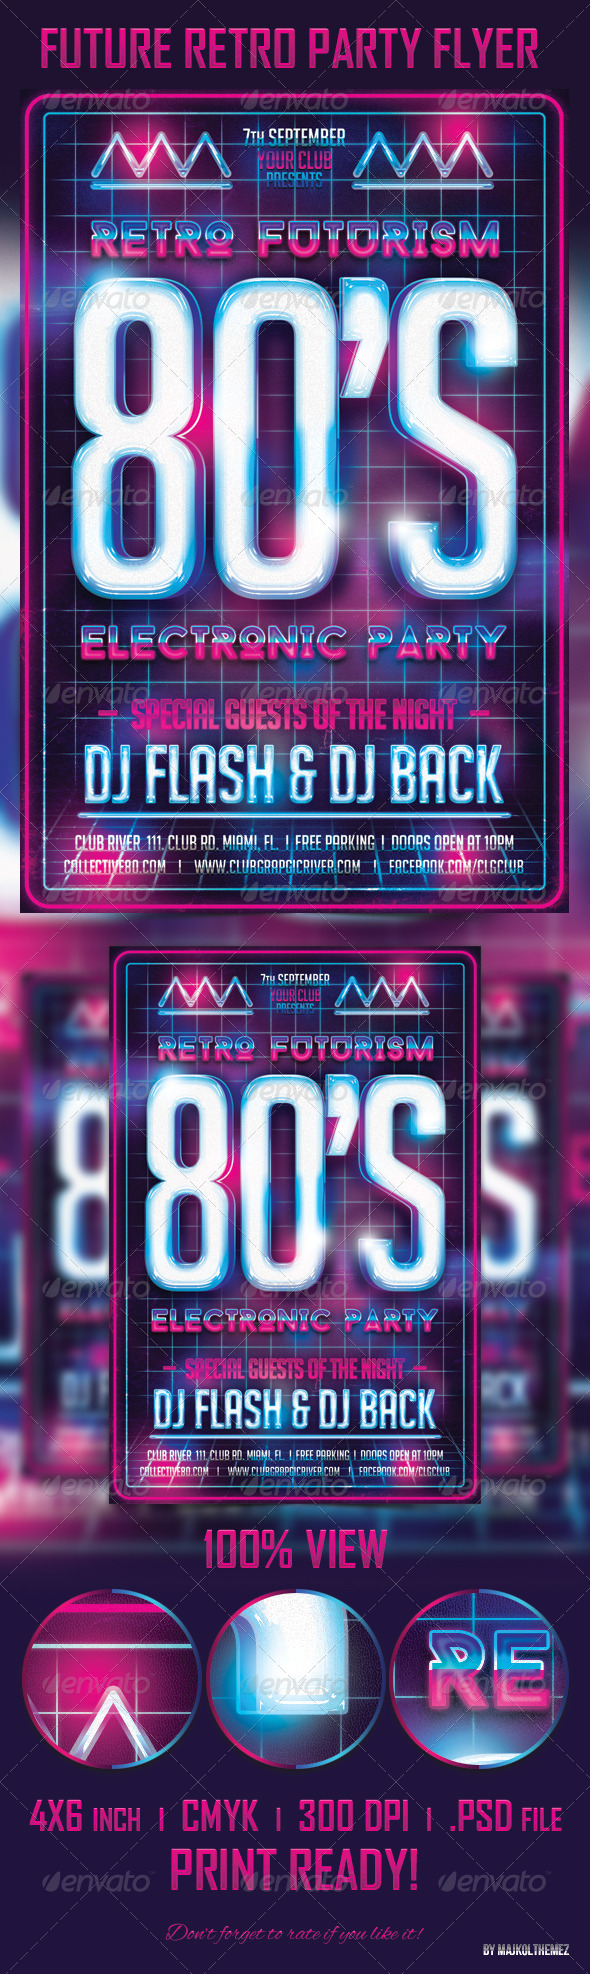 Future Retro Party Flyer Template - Events Flyers